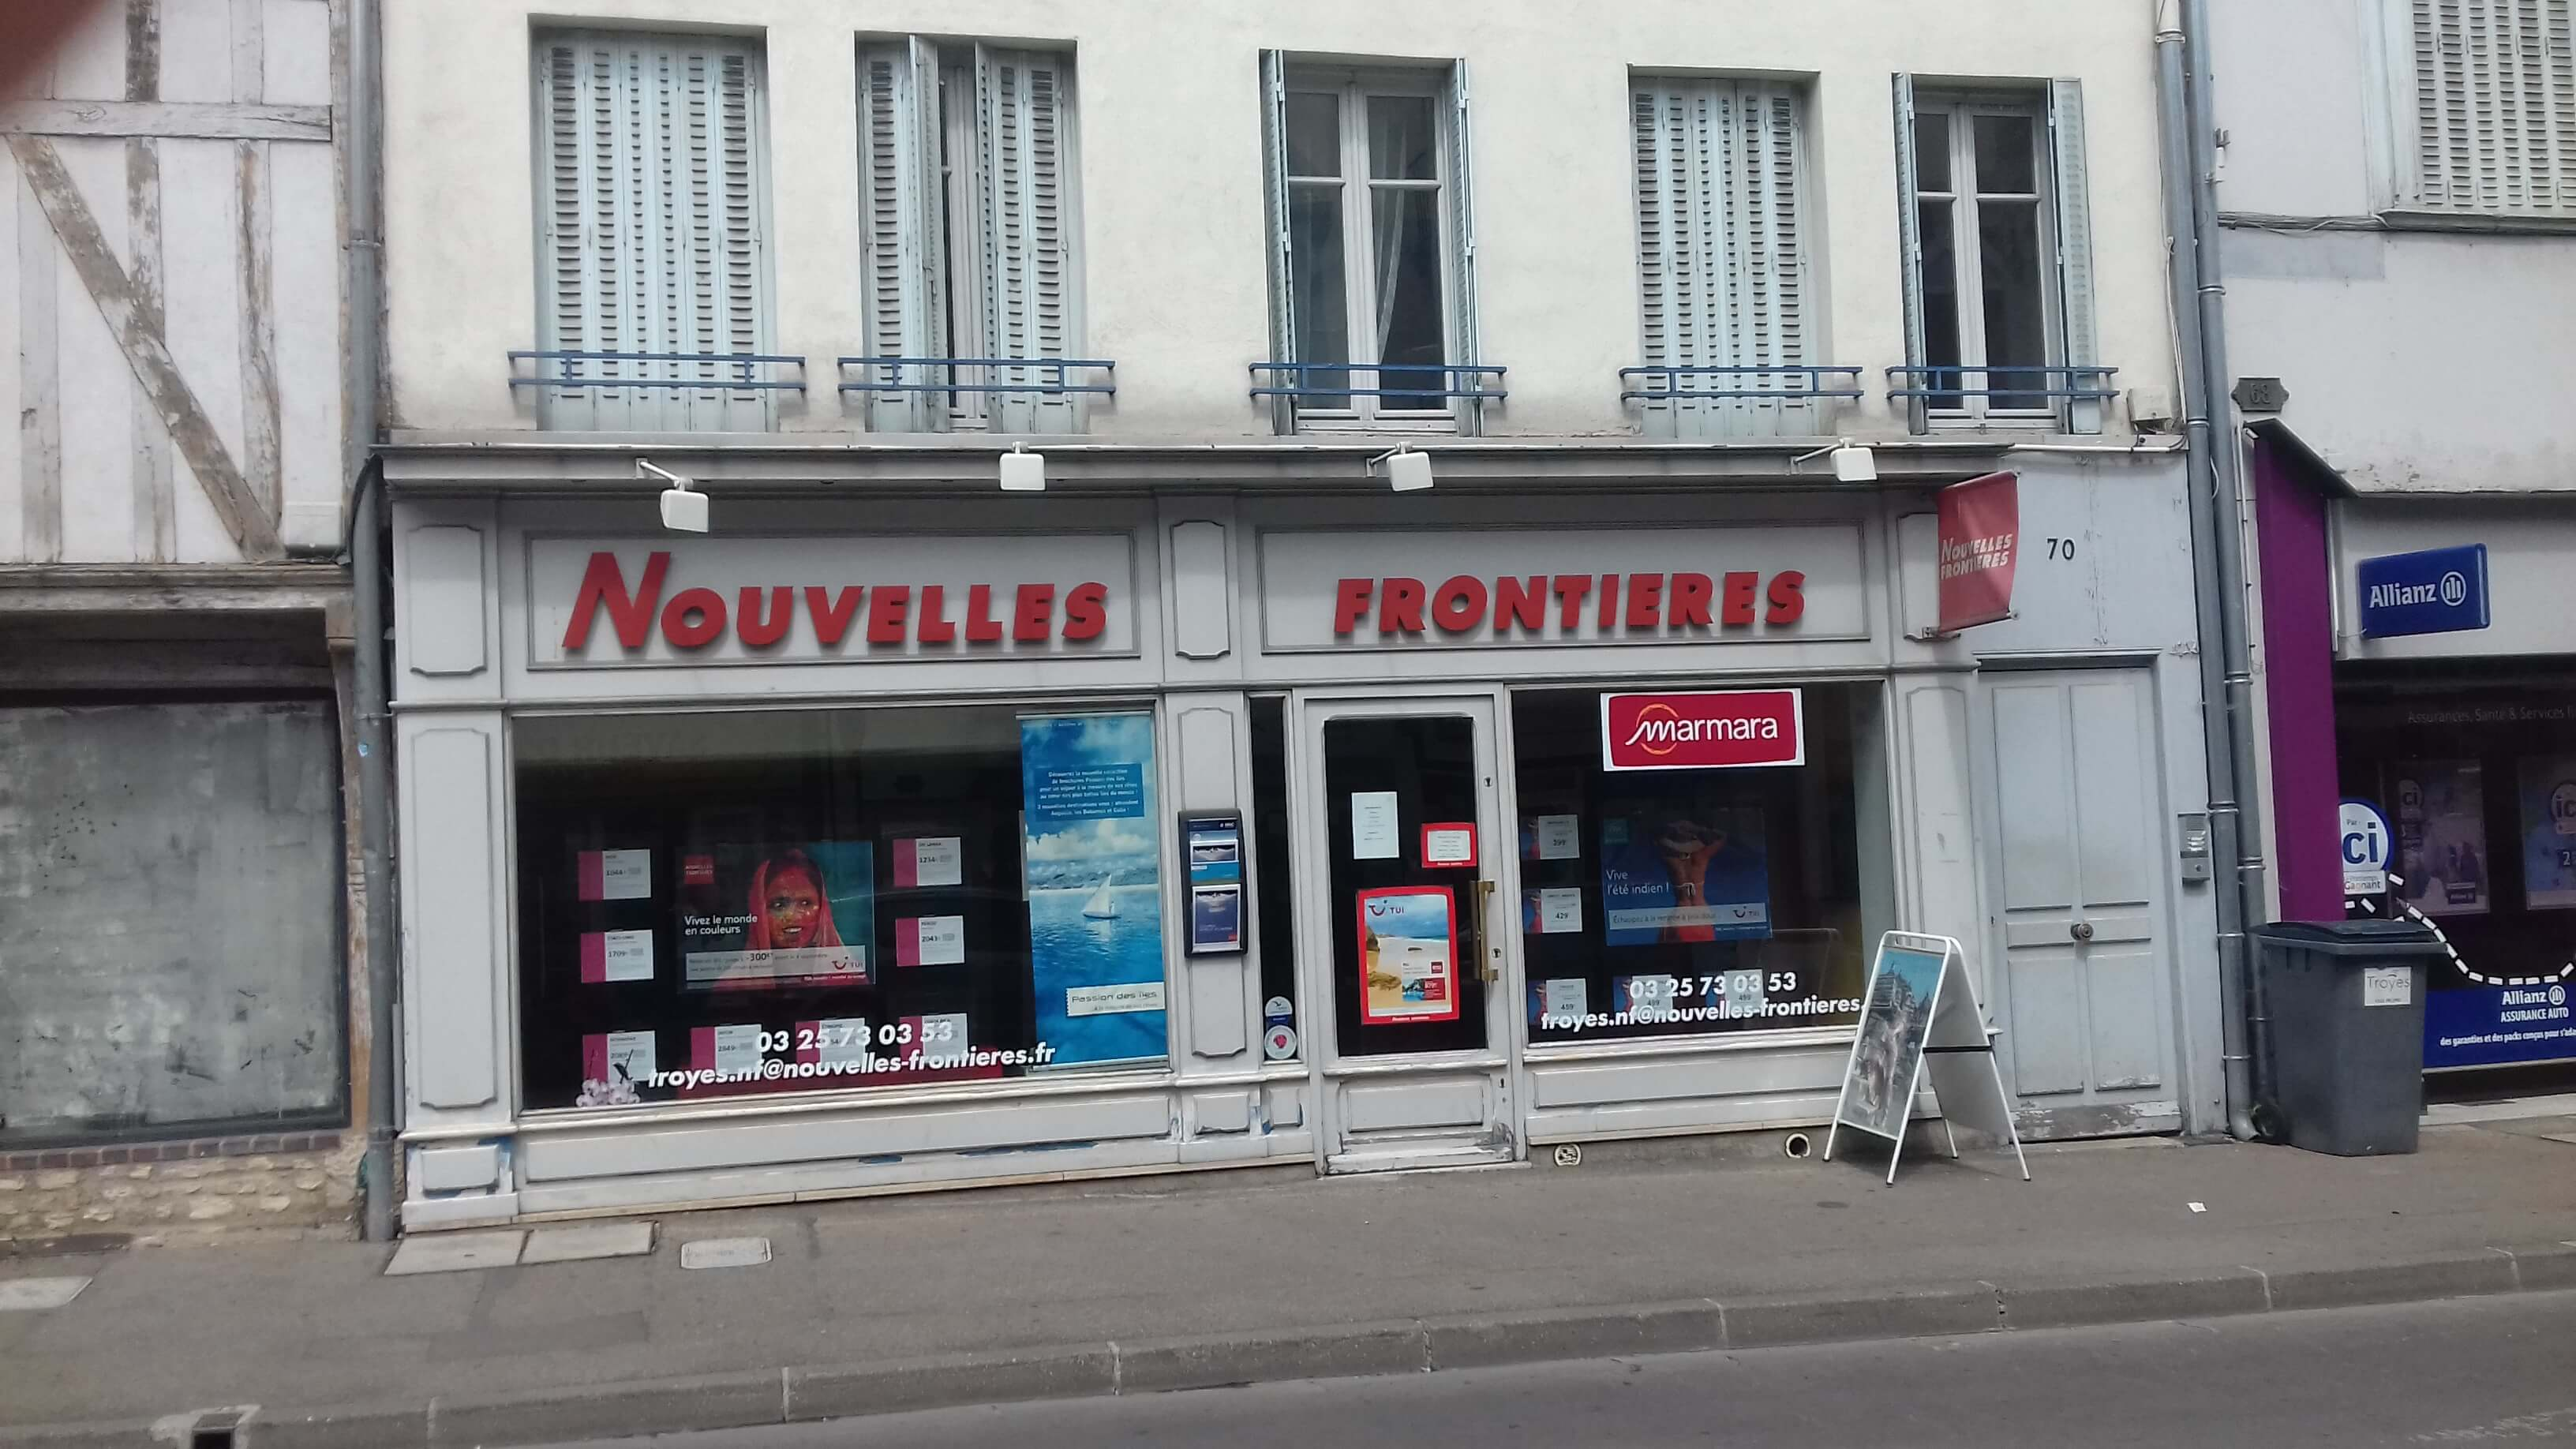 Agence de voyages nouvelles fronti res troyes tui for Agence nouvelle frontiere